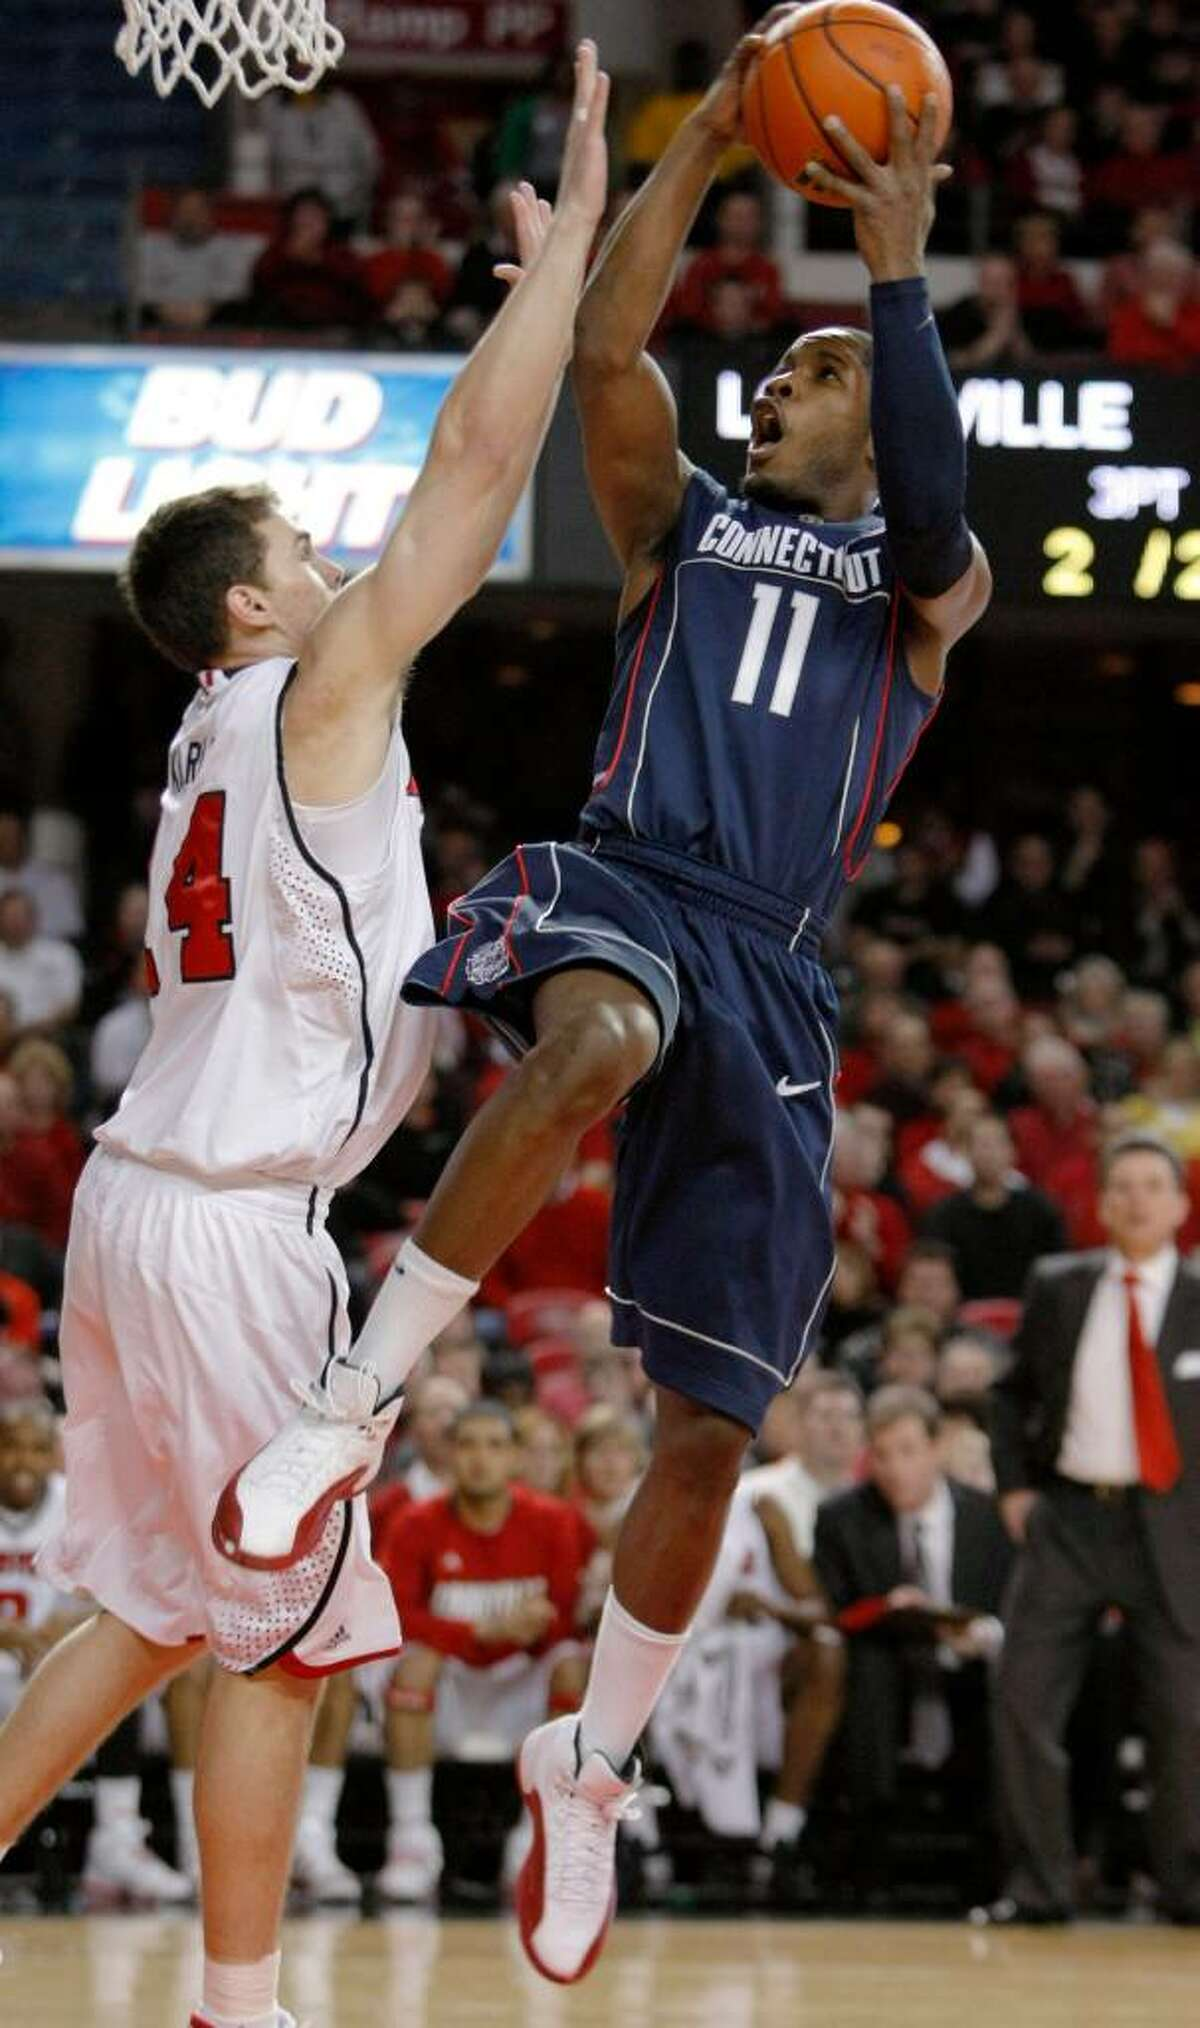 Connecticut's Jerome Dyson shoots over Louisville's Kyle Kuric during the first half of an NCAA college basketball game in Louisville, Ky., Monday, Feb. 1, 2010. (AP Photo/Ed Reinke)